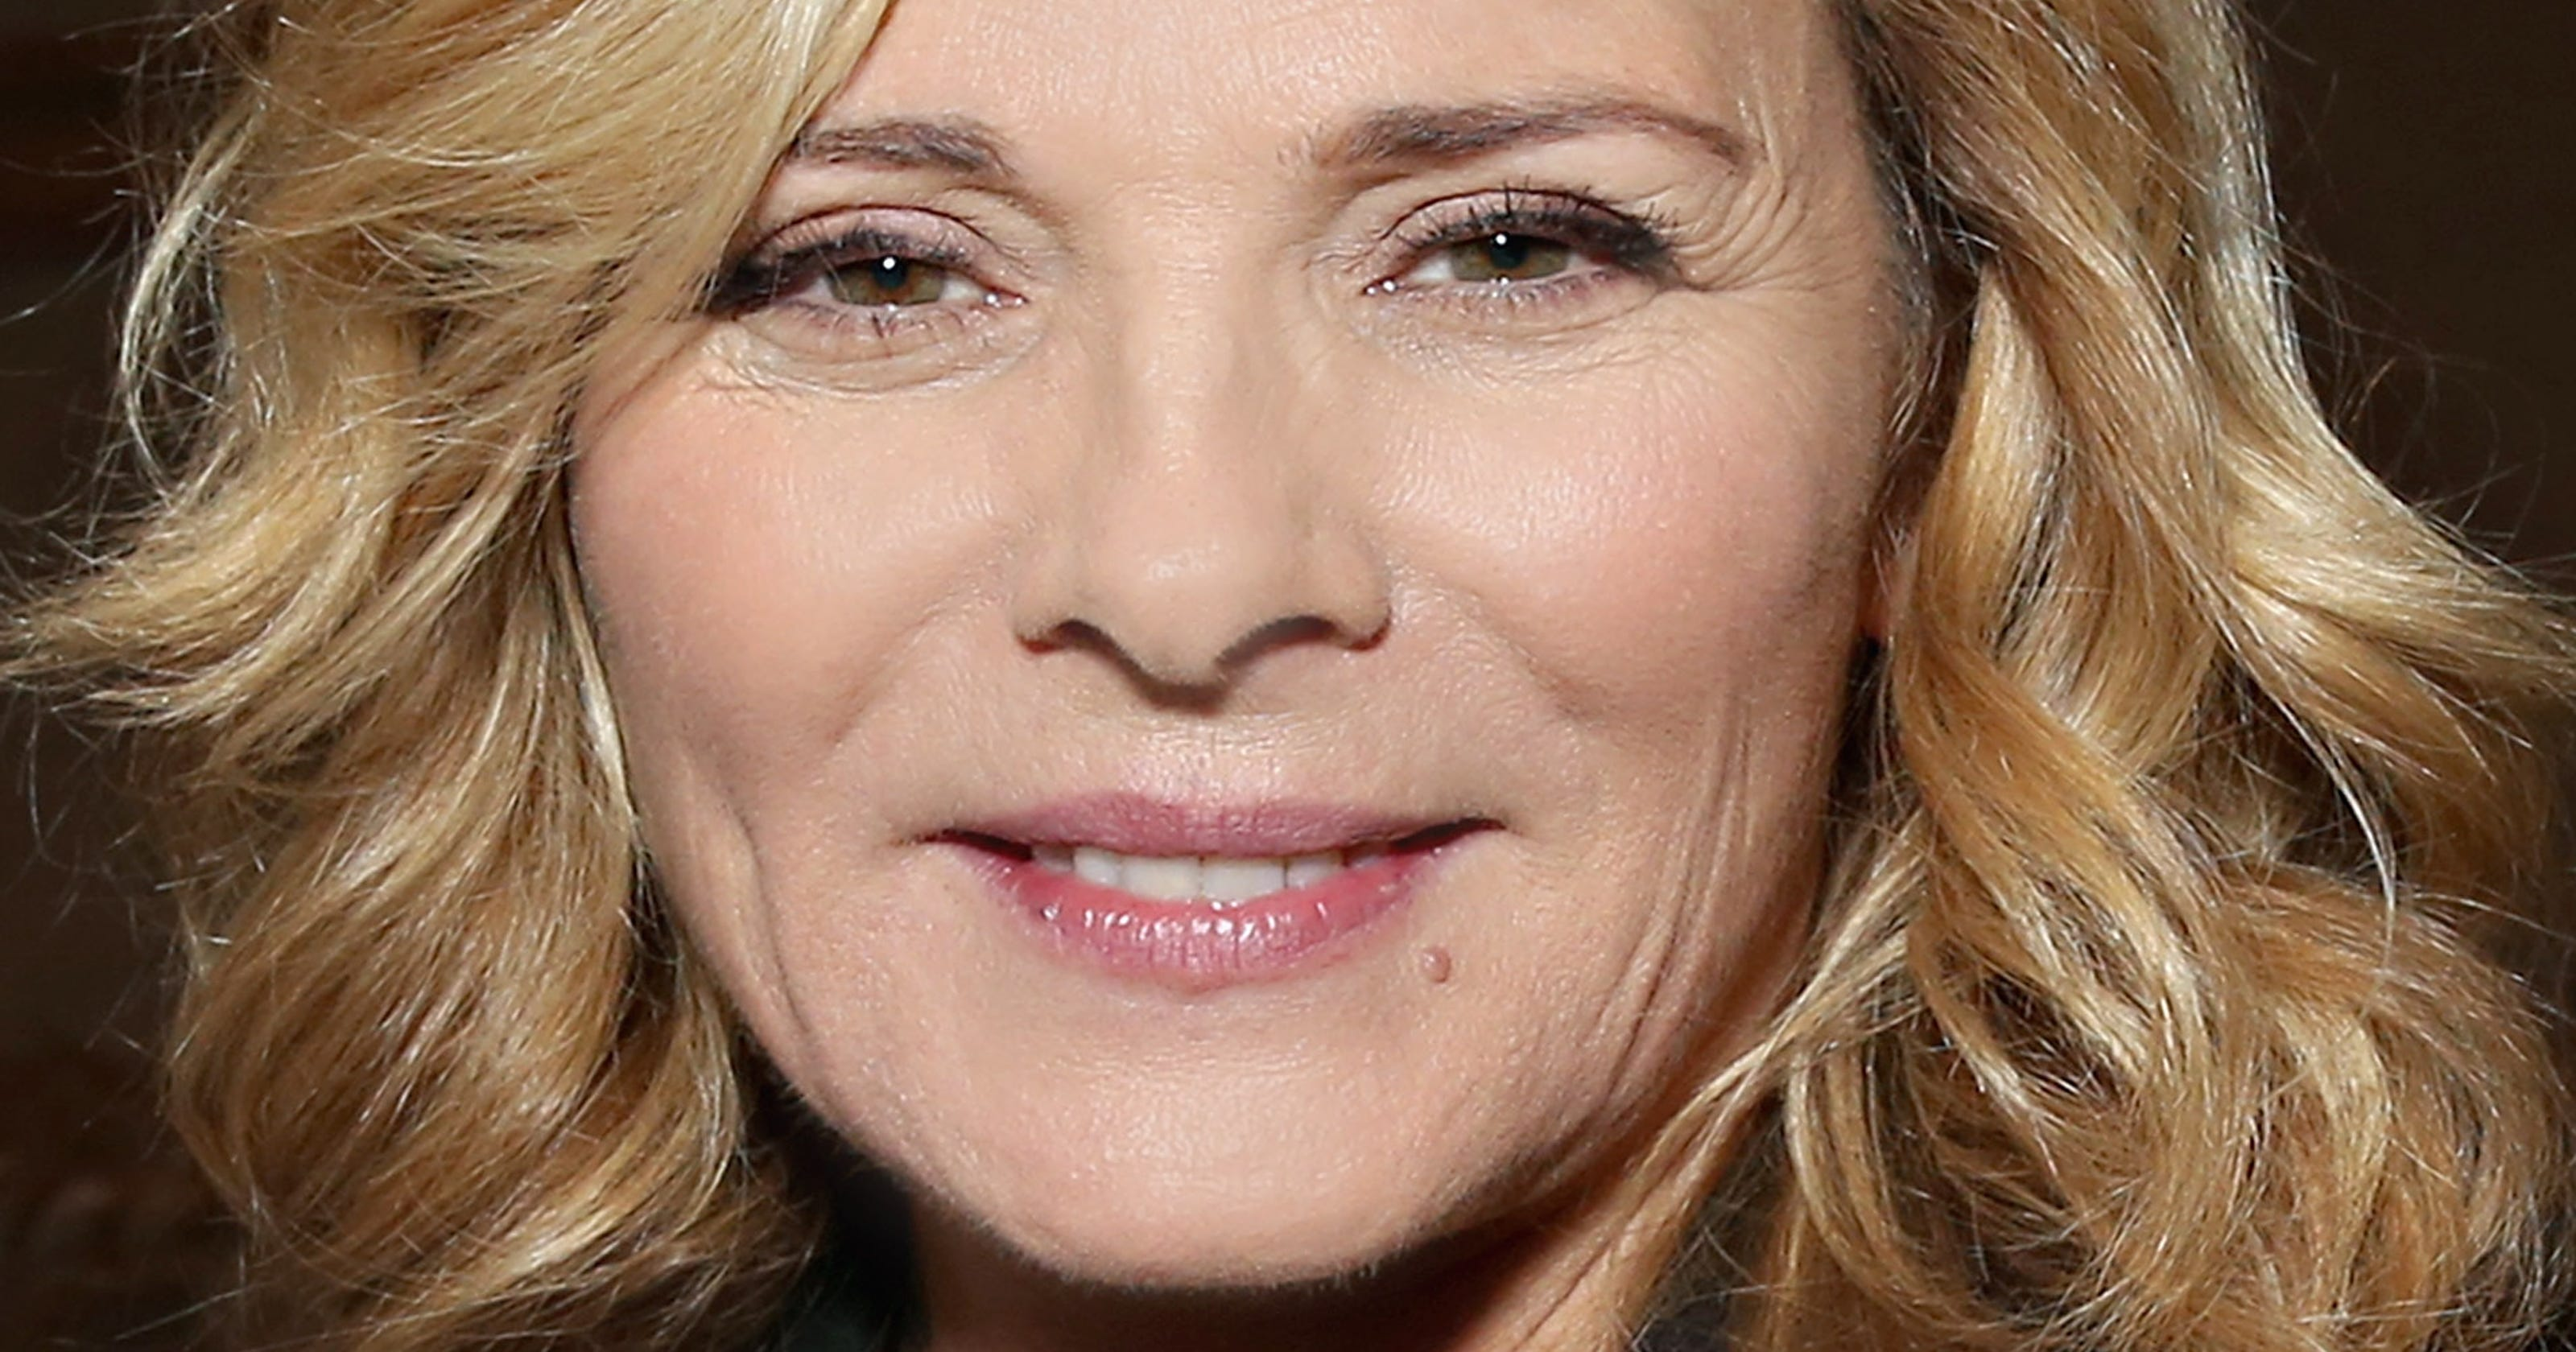 Kim Cattrall gets candid about 'debilitating' insomnia